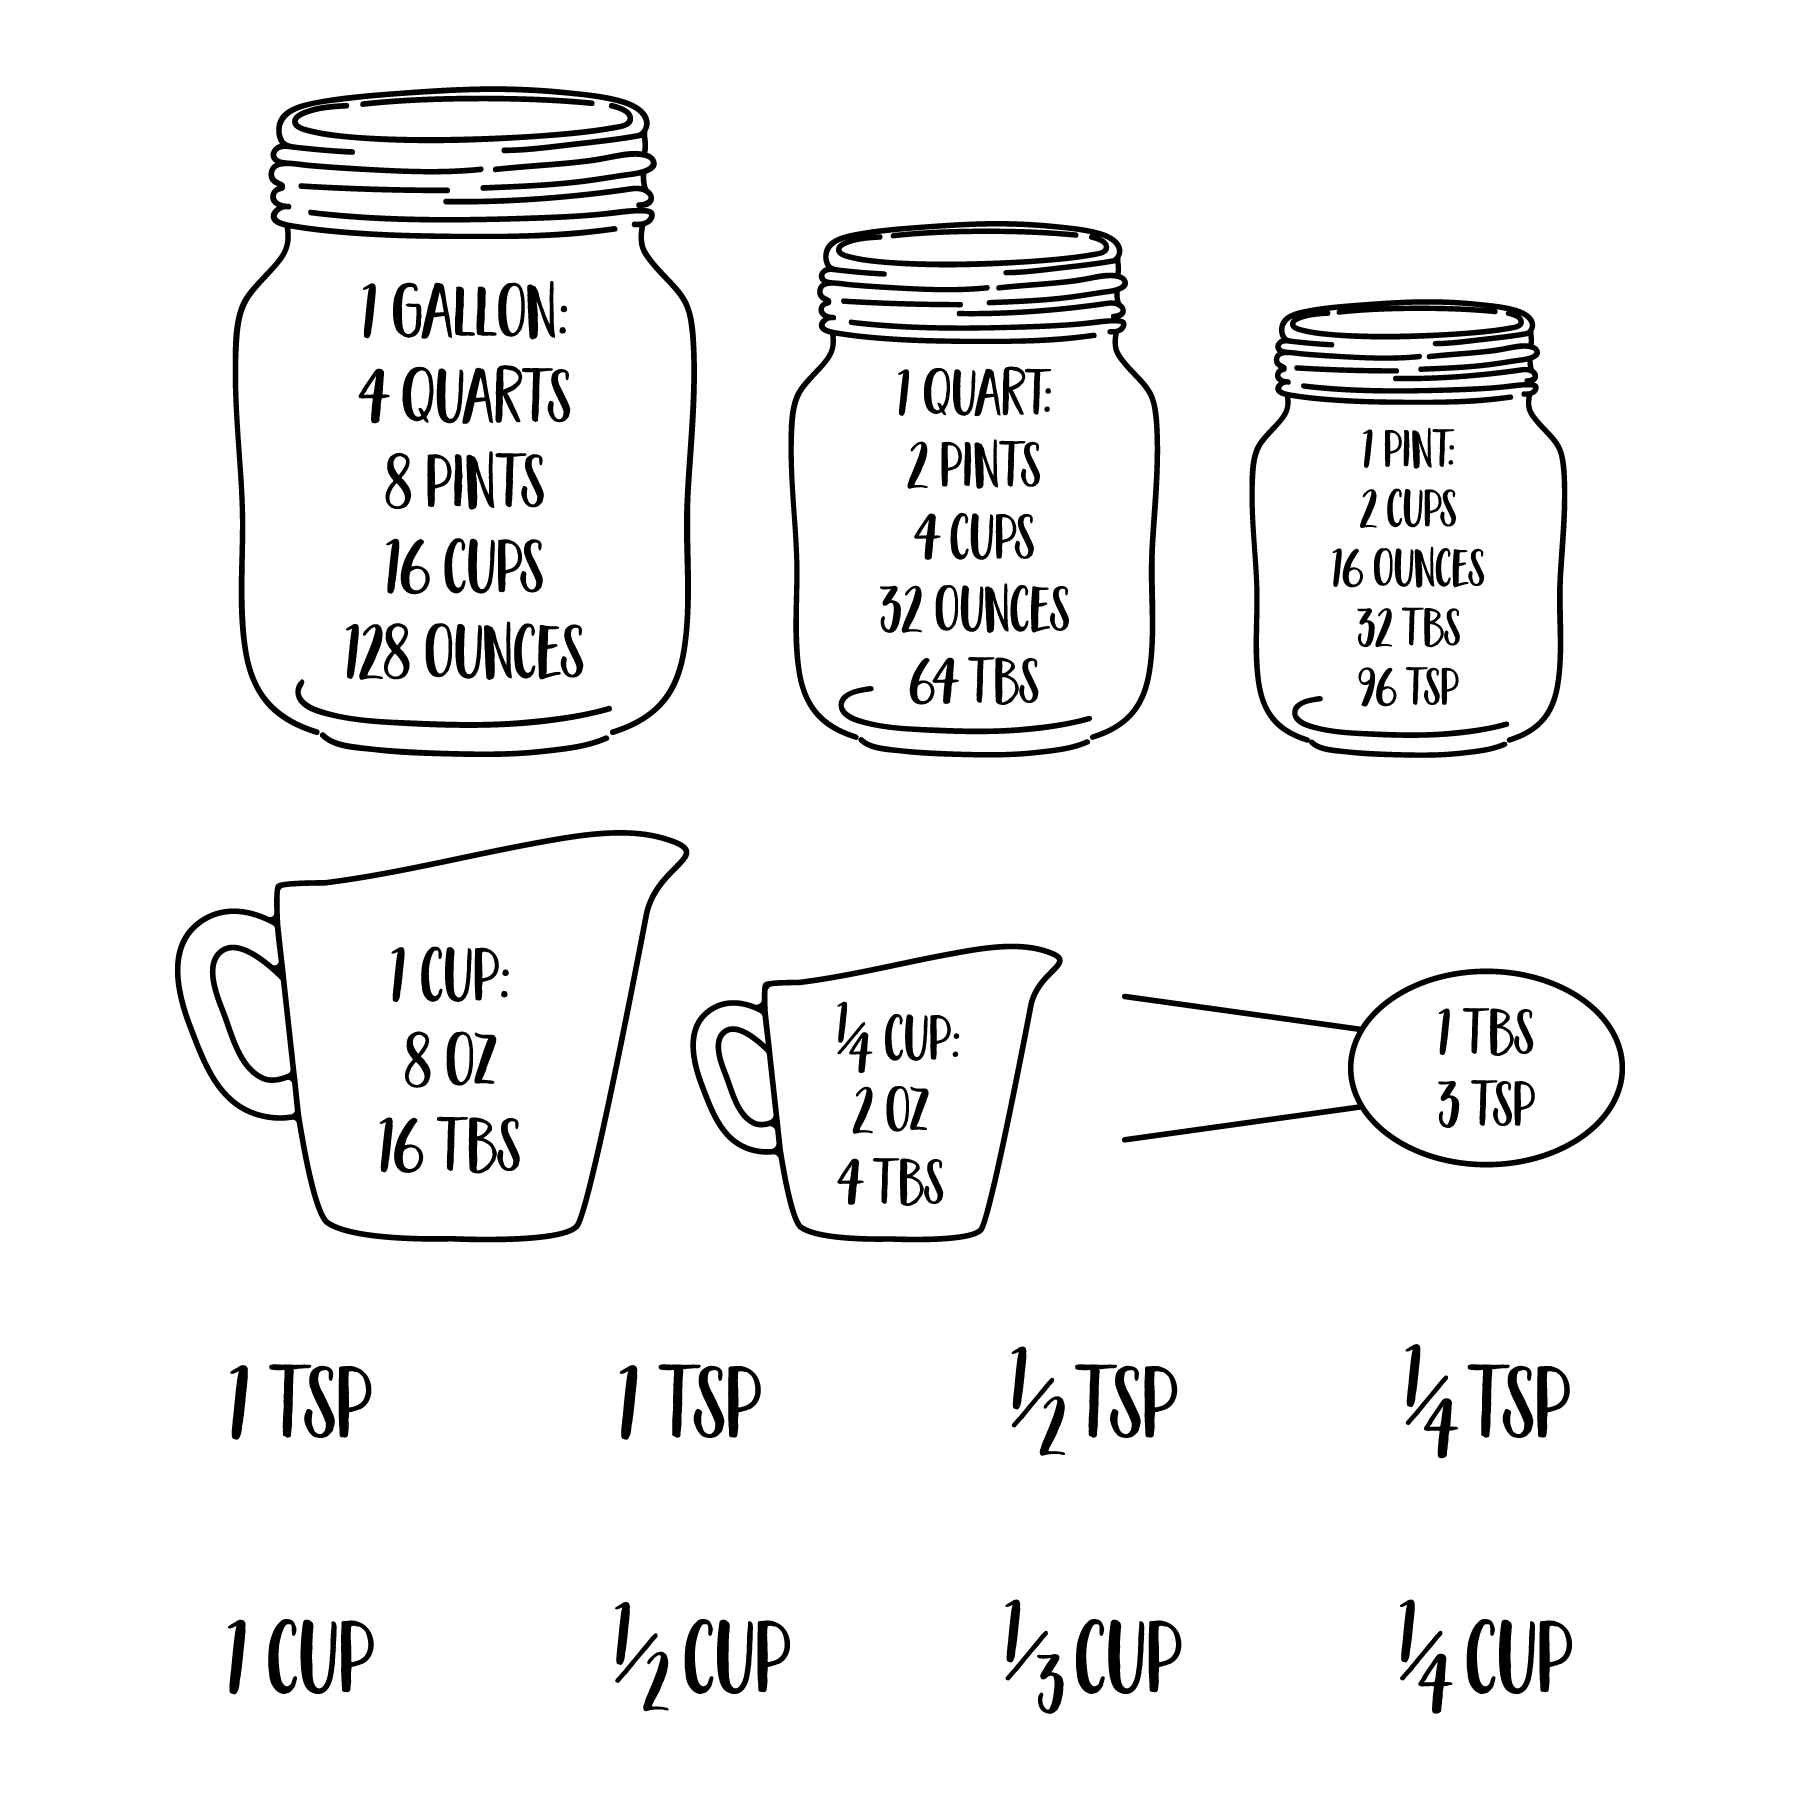 Kitchen_Equivalent_Measurement_Conversion_Chart Free SVG